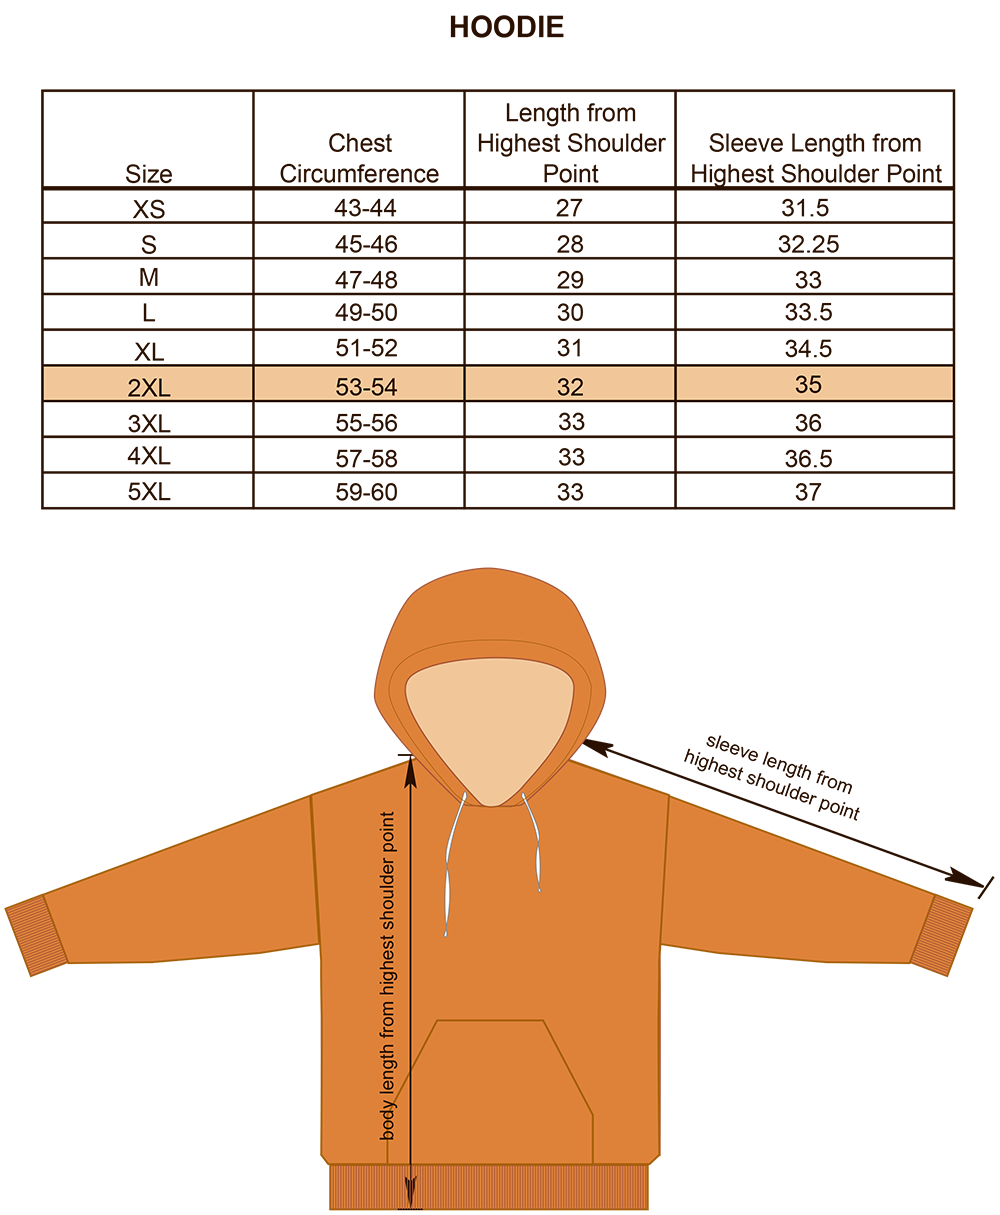 Hoodie Size Chart Image